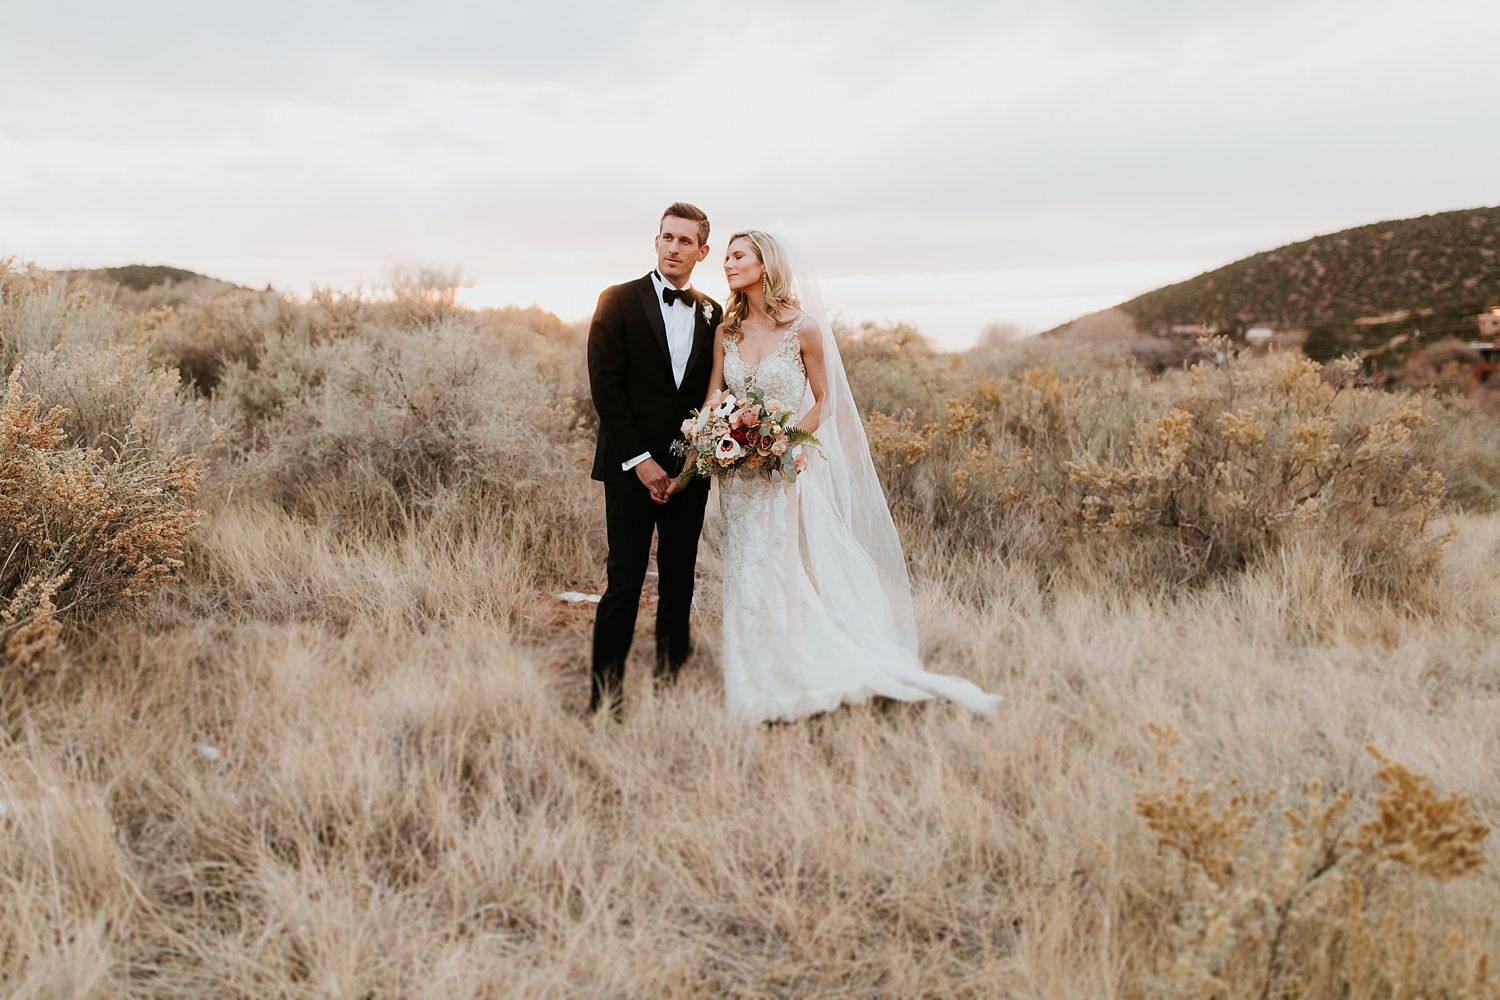 Alicia+lucia+photography+-+albuquerque+wedding+photographer+-+santa+fe+wedding+photography+-+new+mexico+wedding+photographer+-+la+fonda+wedding+-+la+fonda+winter+wedding_0088.jpg